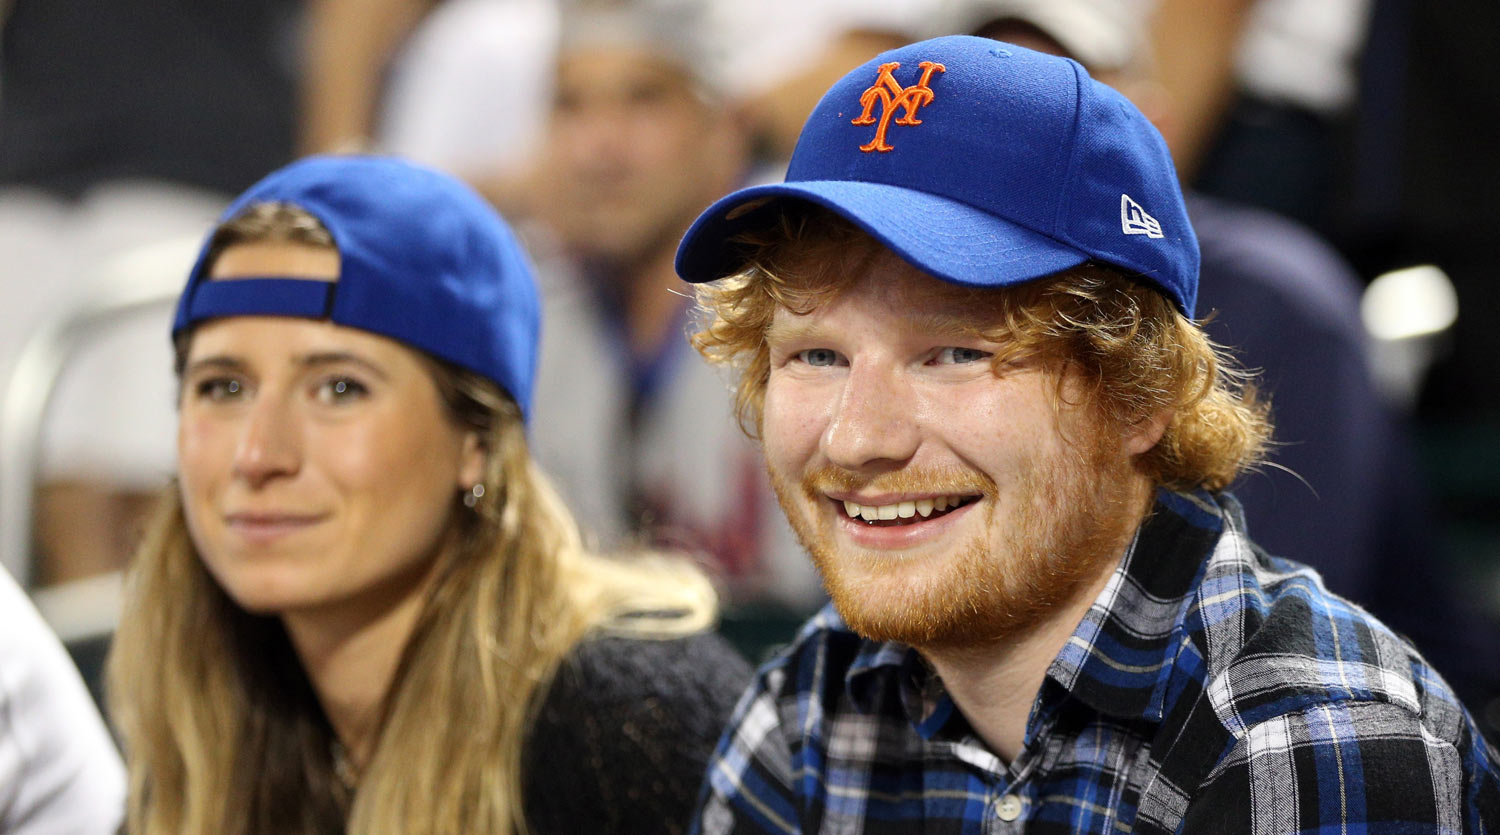 sheeran - Ed Sheeran Engaged to Long-Time Girlfriend Cherry Seaborn